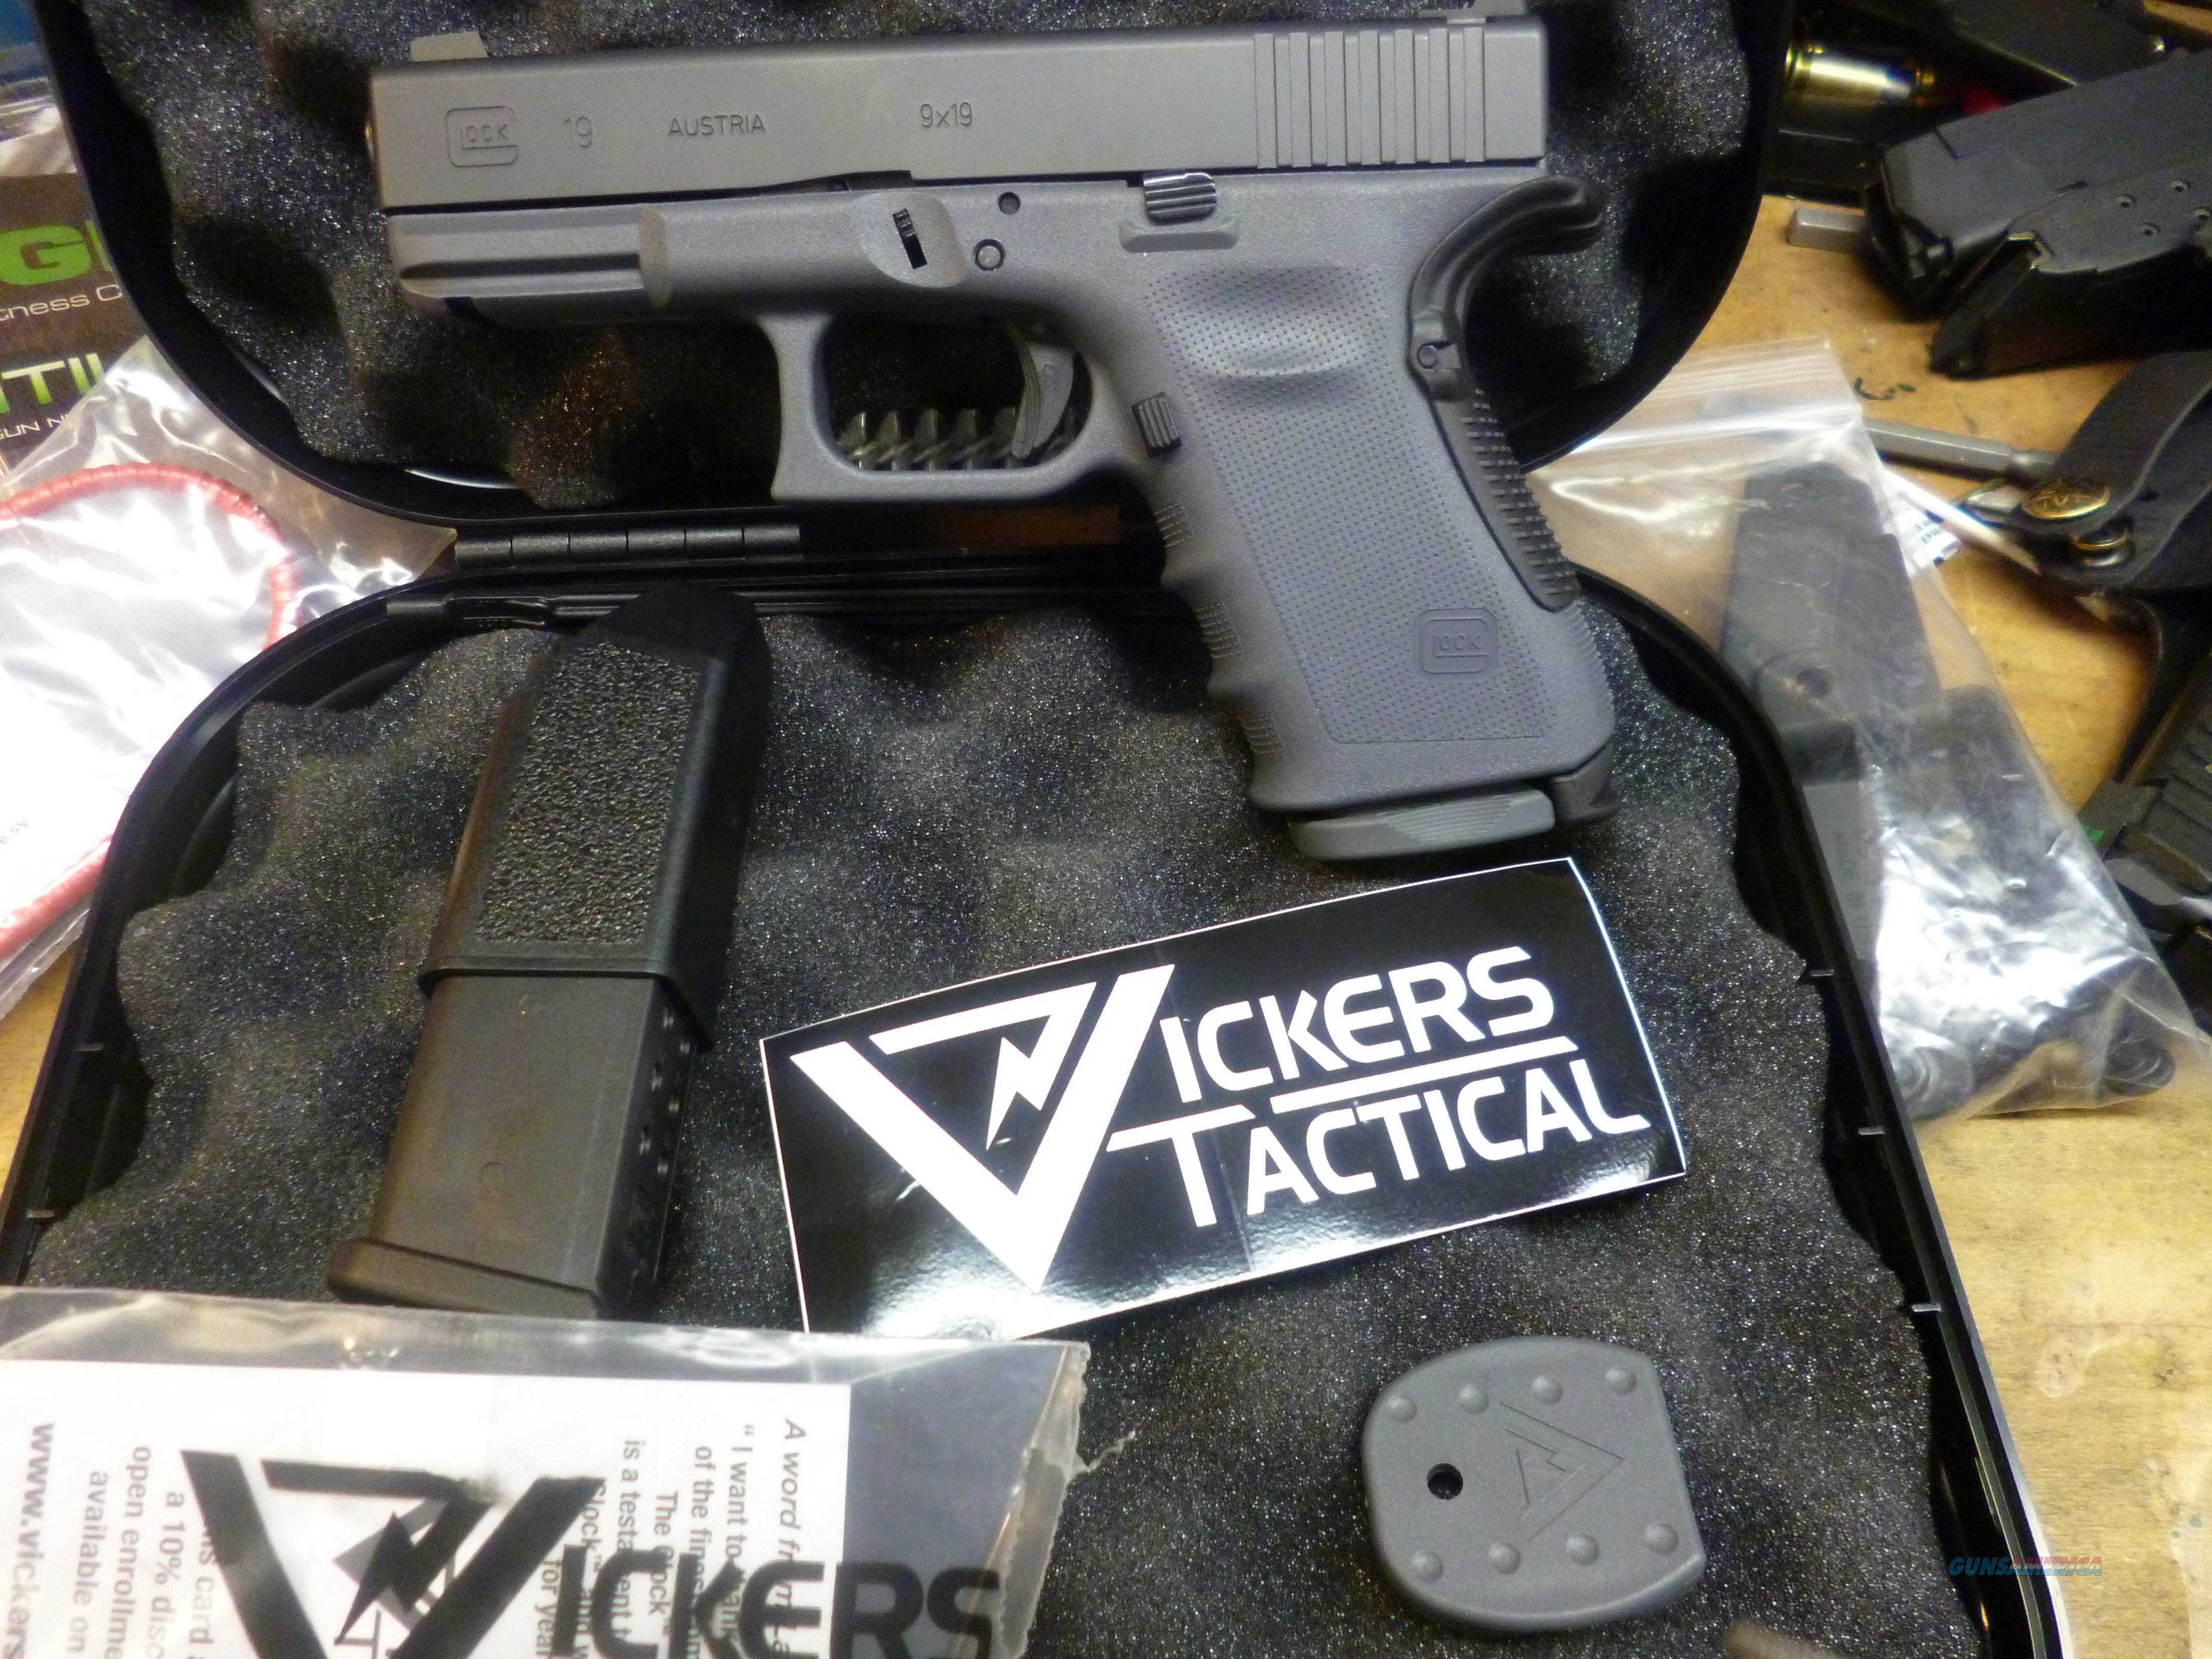 LARRY VICKERS GLOCK 19 LIPSEY'S LIMITED EDITION GRAY